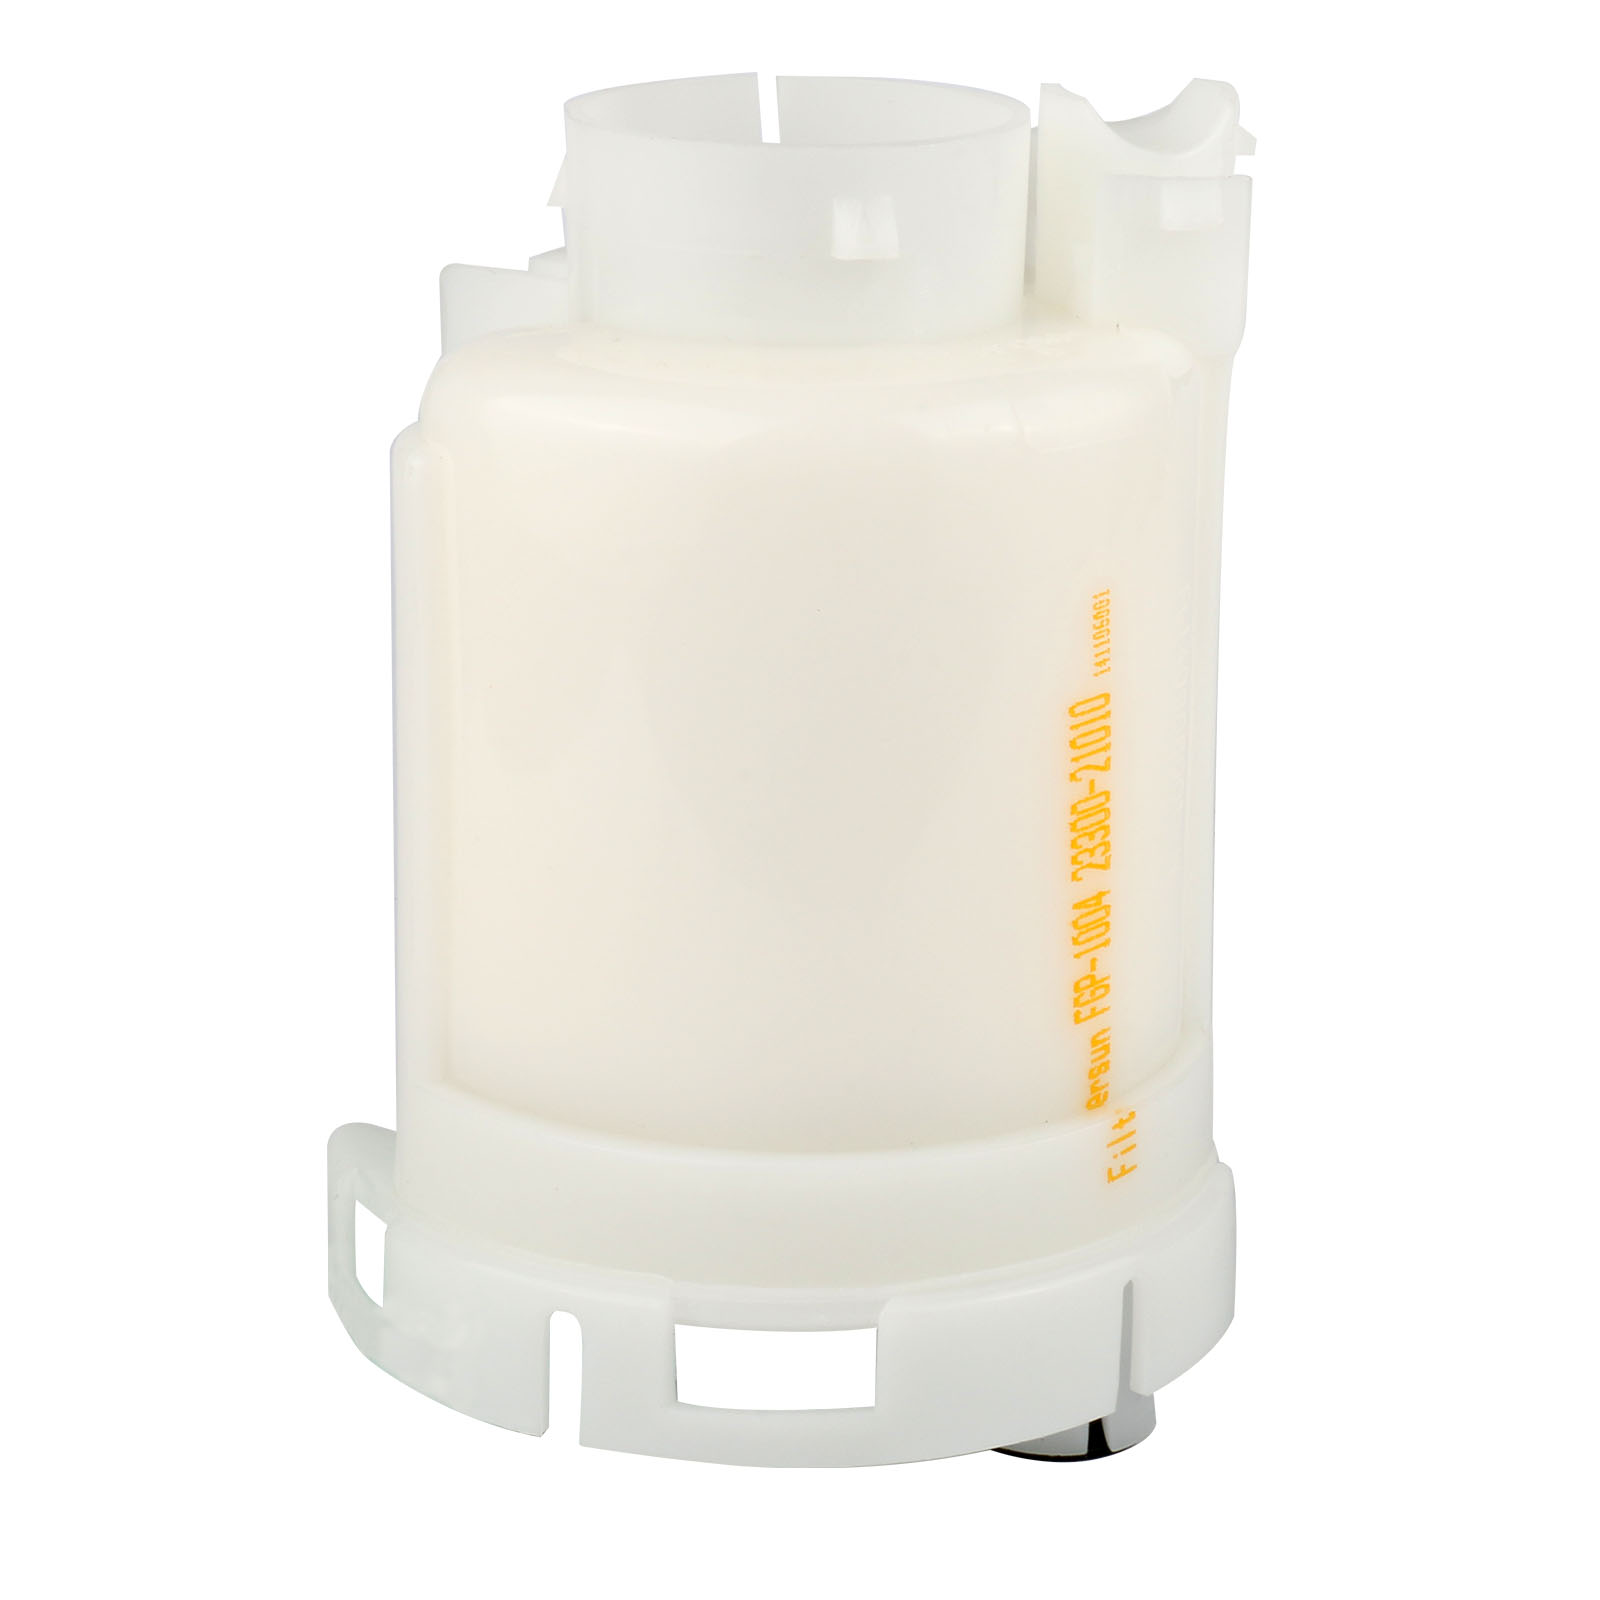 hight resolution of car gas gasoline petrol fuel filter oe 23300 21010 23300 0d030replacement parts for